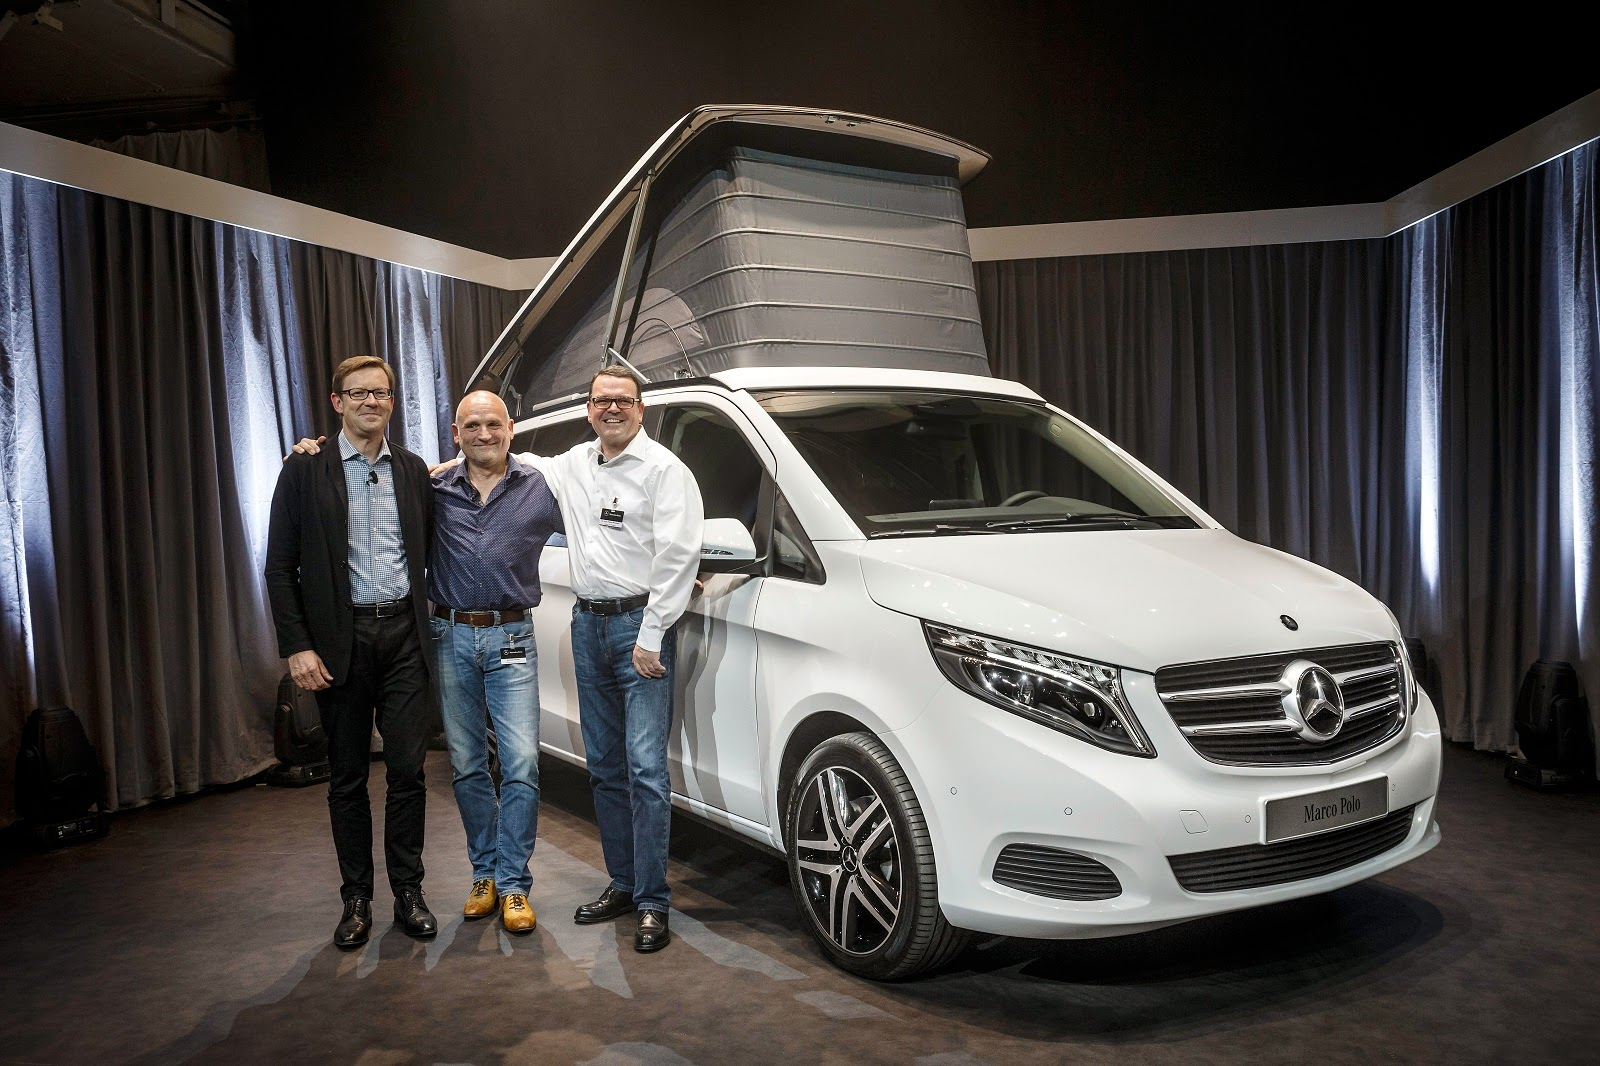 Mercedes benz marco polo and marco polo activity new for Mercedes benz recreational vehicles